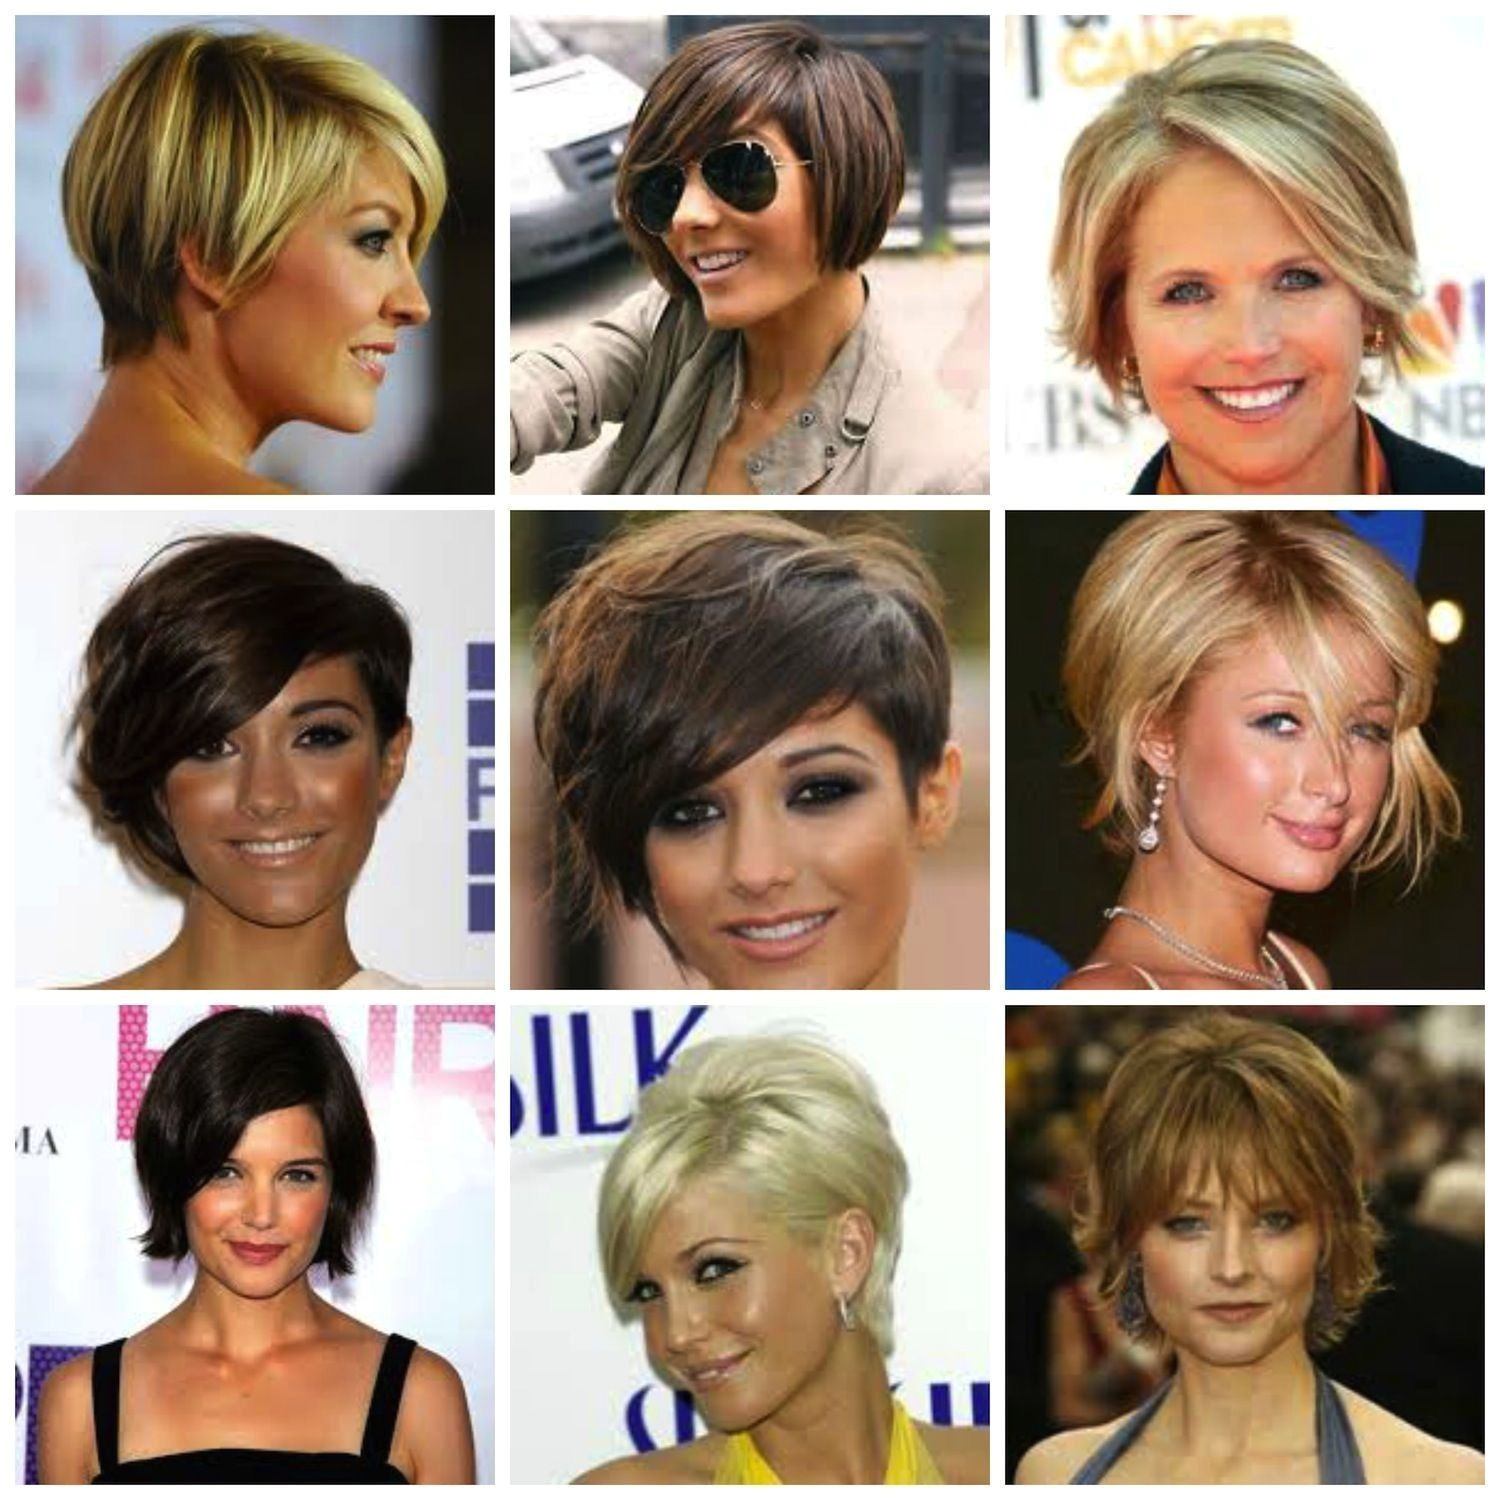 Gallery New Style Haircuts Curly Hairstyles Very Curly Hairstyles Luxury Ouidad Haircut 0d